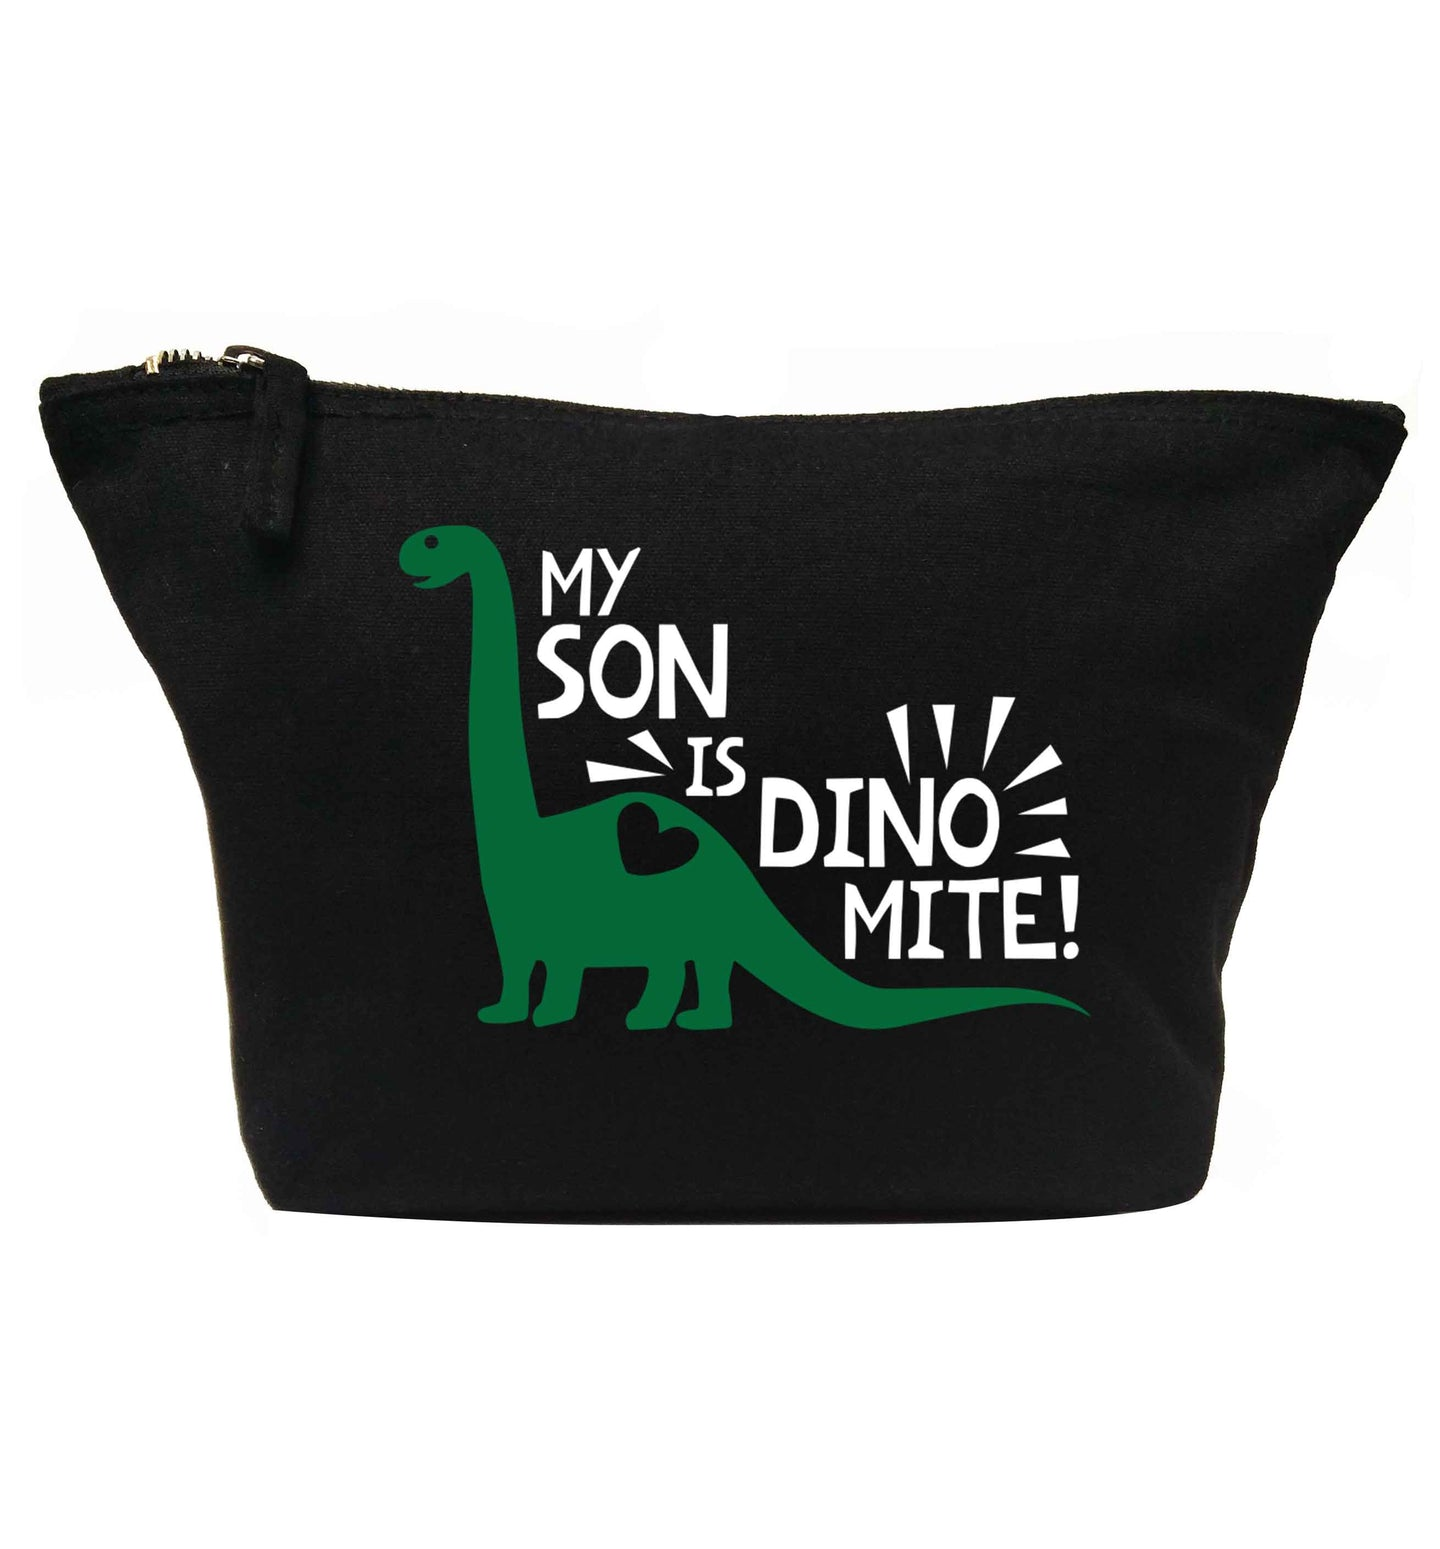 My son is dinomite! | makeup / wash bag